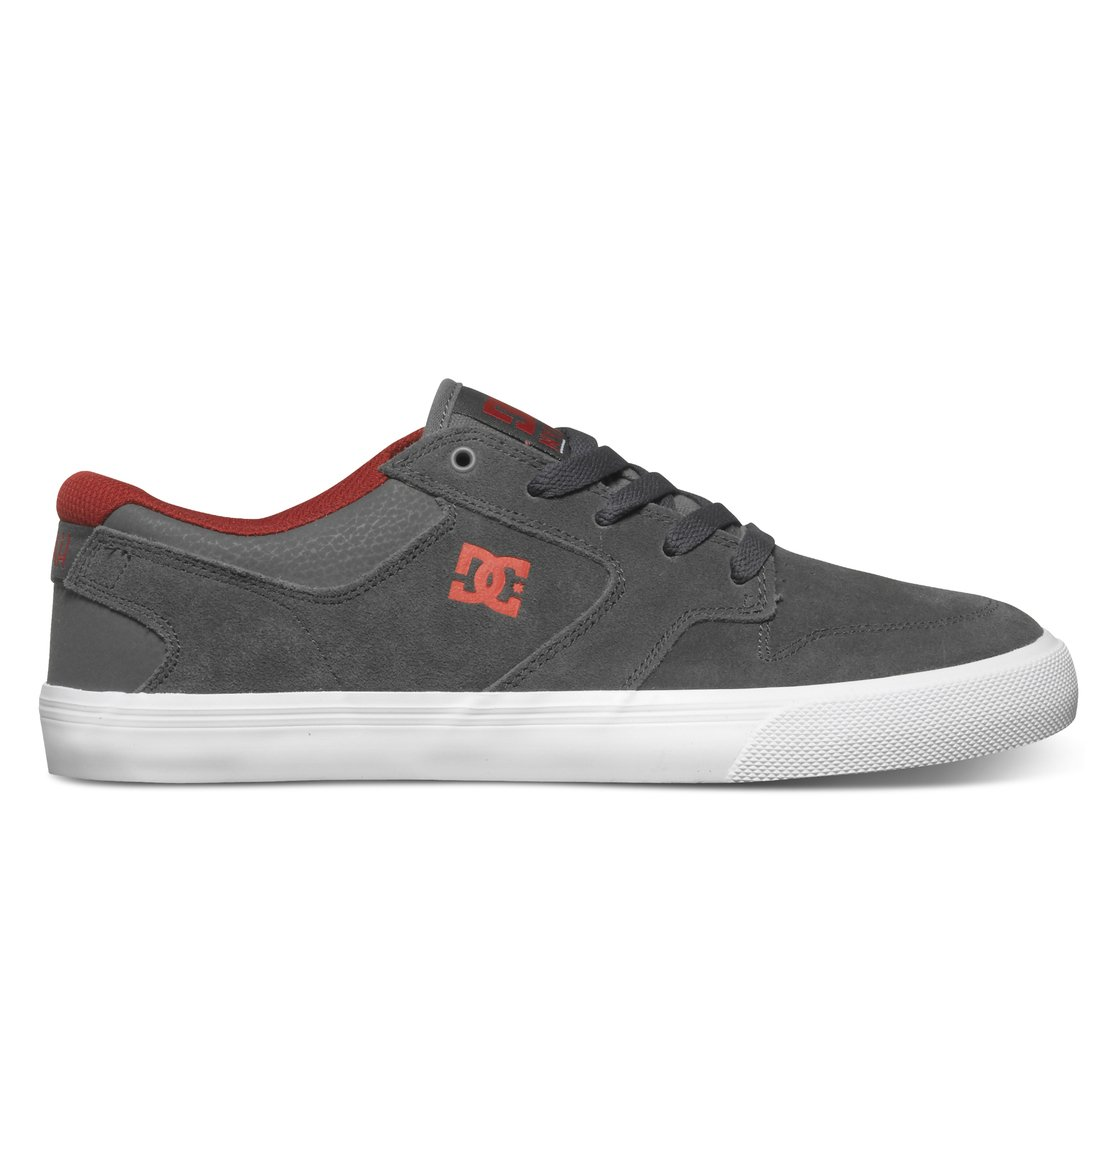 dc shoes nyjah vulc chaussures basses homme adys300068 ebay. Black Bedroom Furniture Sets. Home Design Ideas